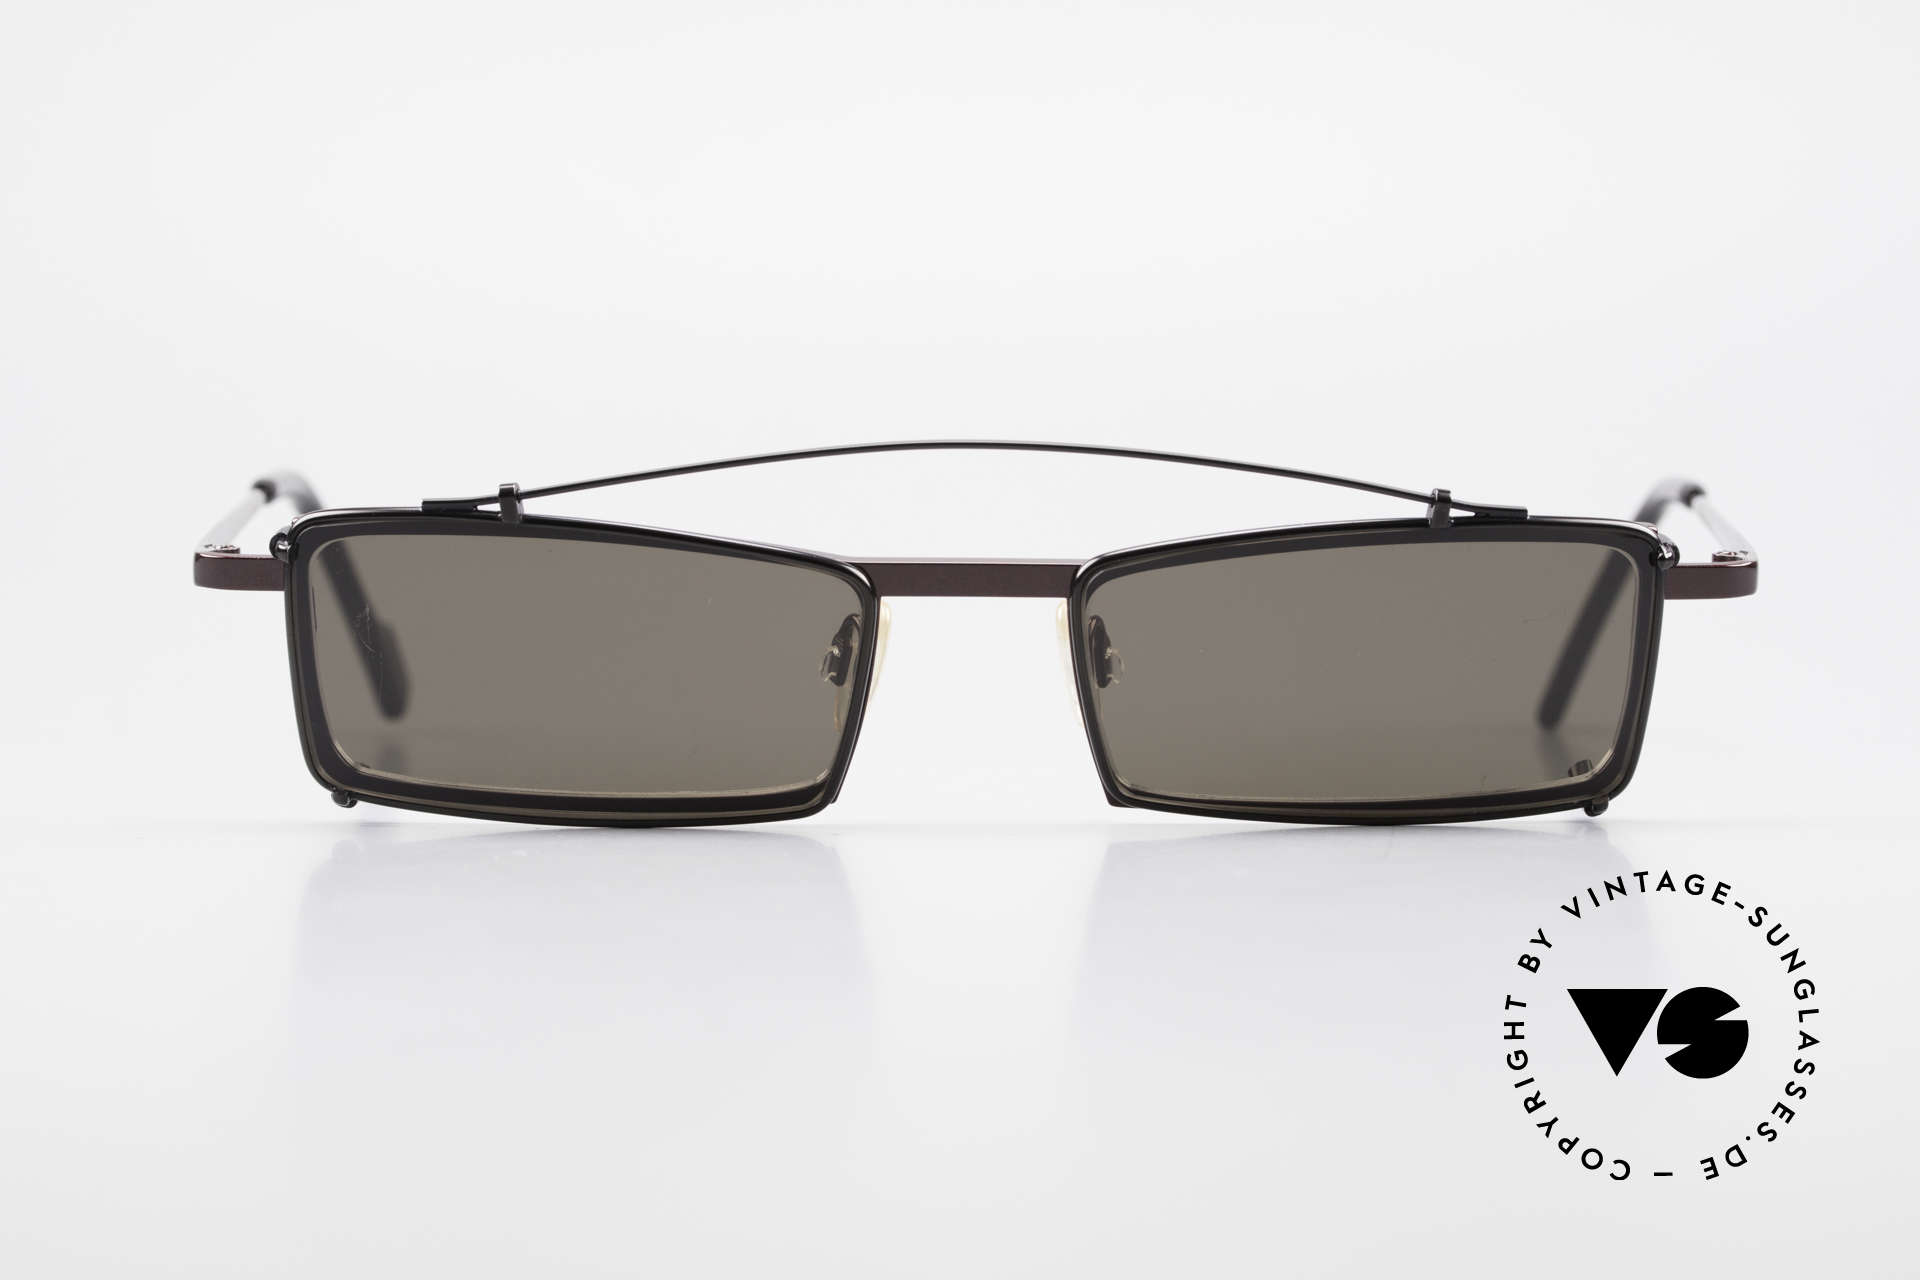 Theo Belgium XXM Clip On Designer Frame Square, founded in 1989 as 'opposite pole' to the 'mainstream', Made for Men and Women